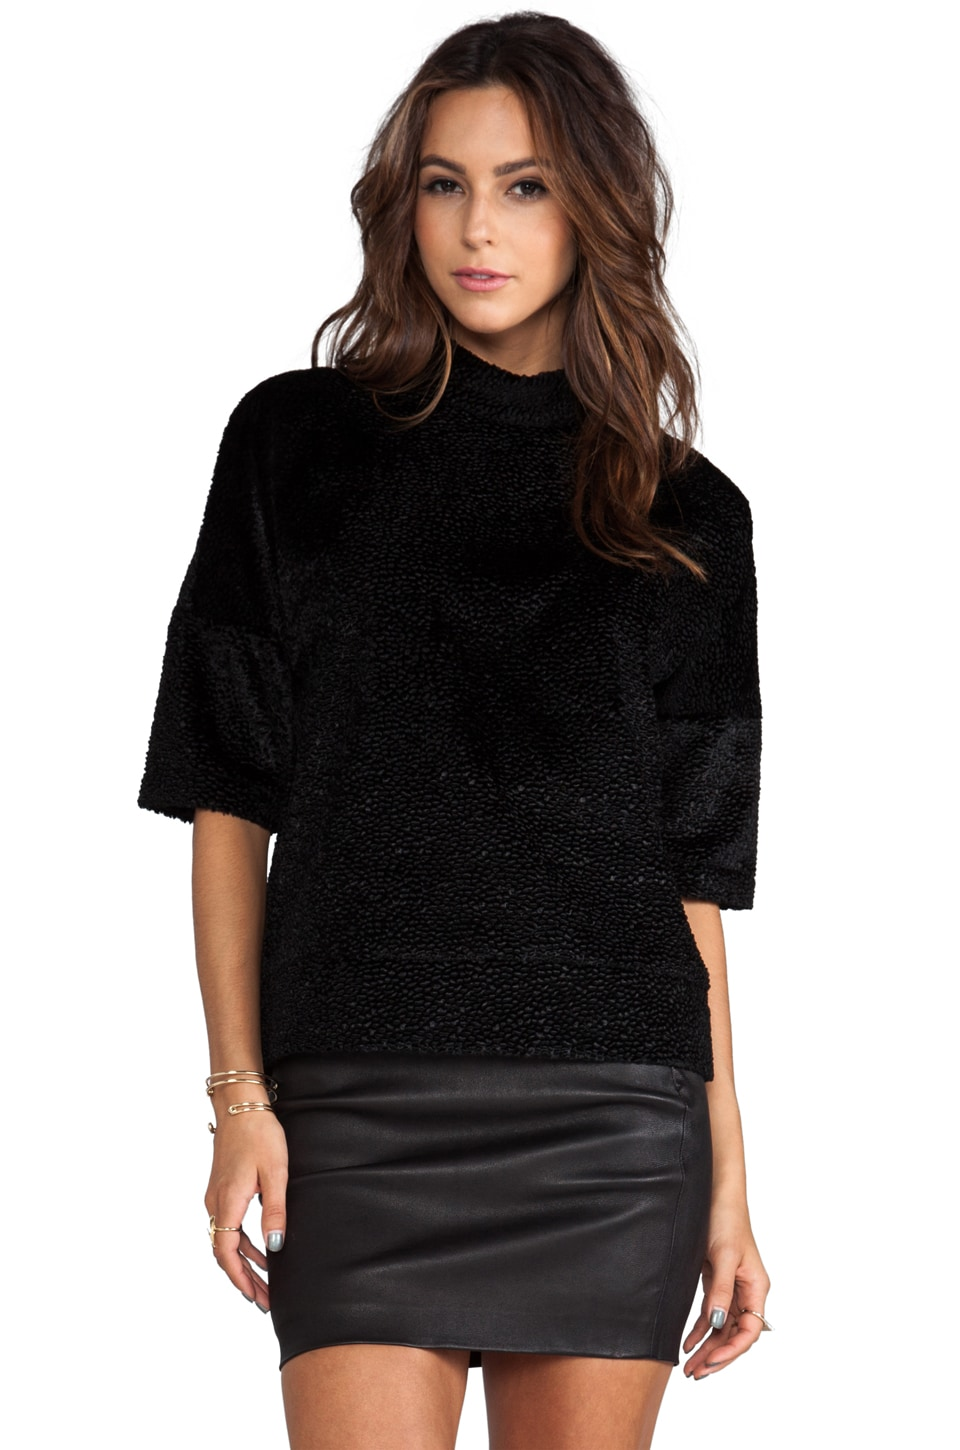 DEREK LAM 10 CROSBY Velvet Oversized Sweater in Black